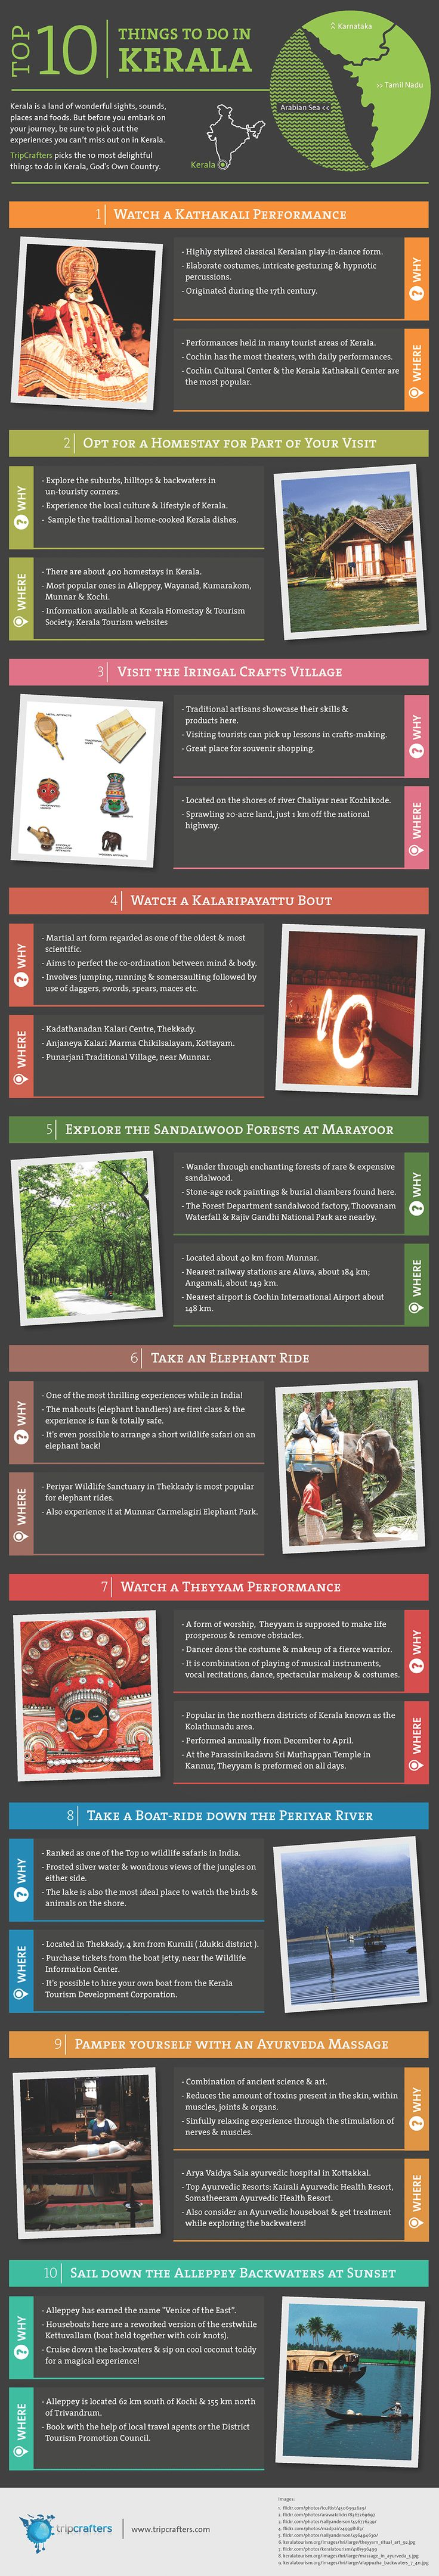 10 Top Things To Do In Kerala [Free Infographic]